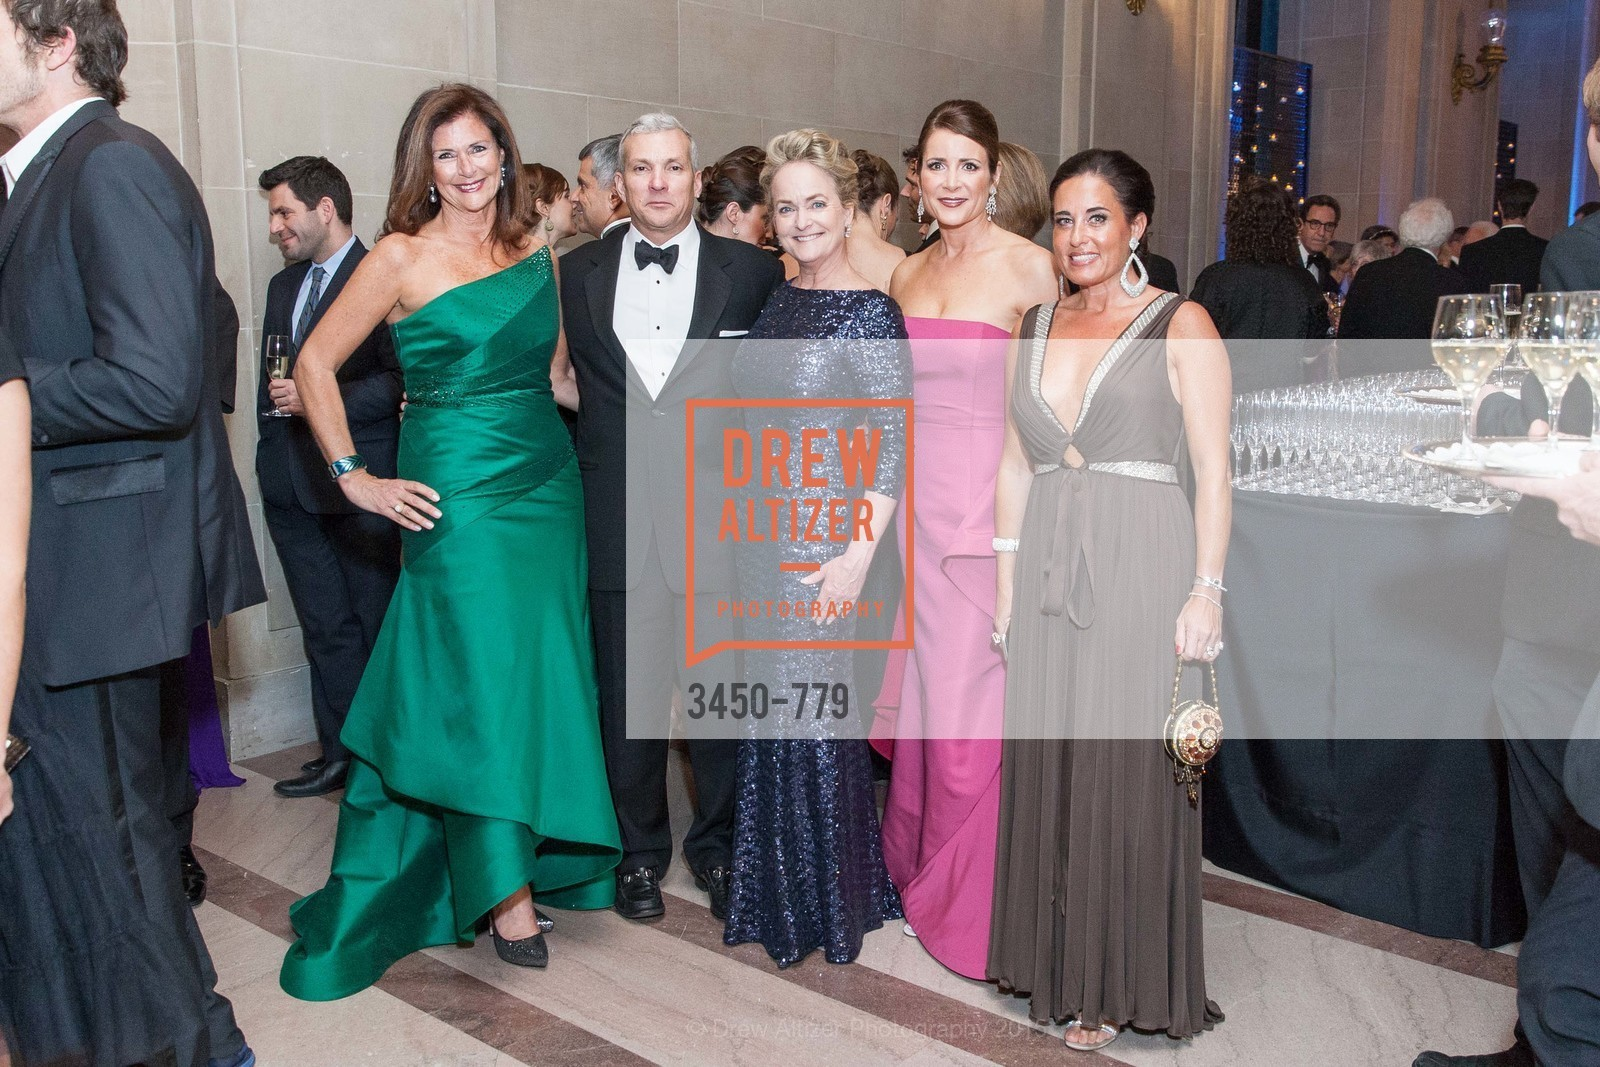 Linda Zider, Nigel Sutton, Shelby Strudwick, Michelle Ritchie, Natalia Urrutia, San Francisco Ballet 2015 Opening Night Gala, San Francisco City Hall. 1 Dr Carlton B Goodlett Pl, January 22nd, 2015,Drew Altizer, Drew Altizer Photography, full-service agency, private events, San Francisco photographer, photographer california